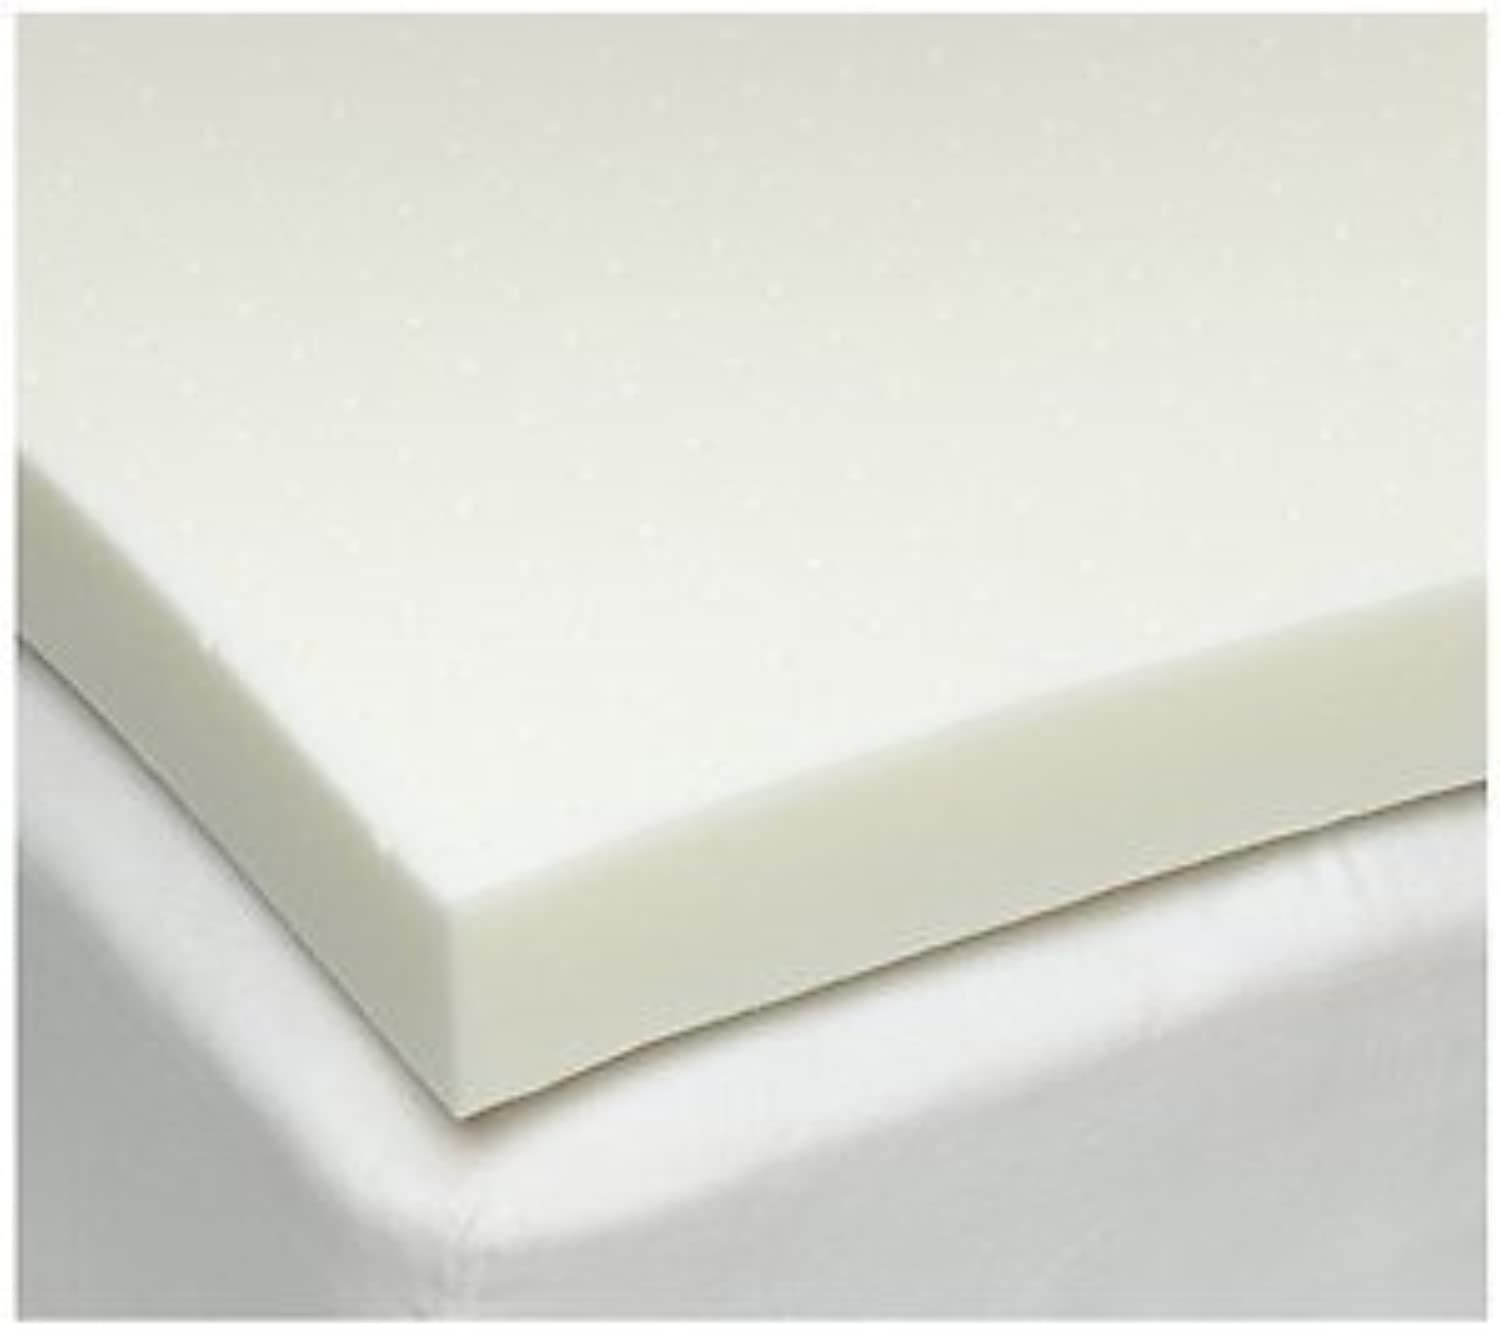 Full Double 2 Inch iSoCore 4.0 Memory Foam Mattress Topper American Made